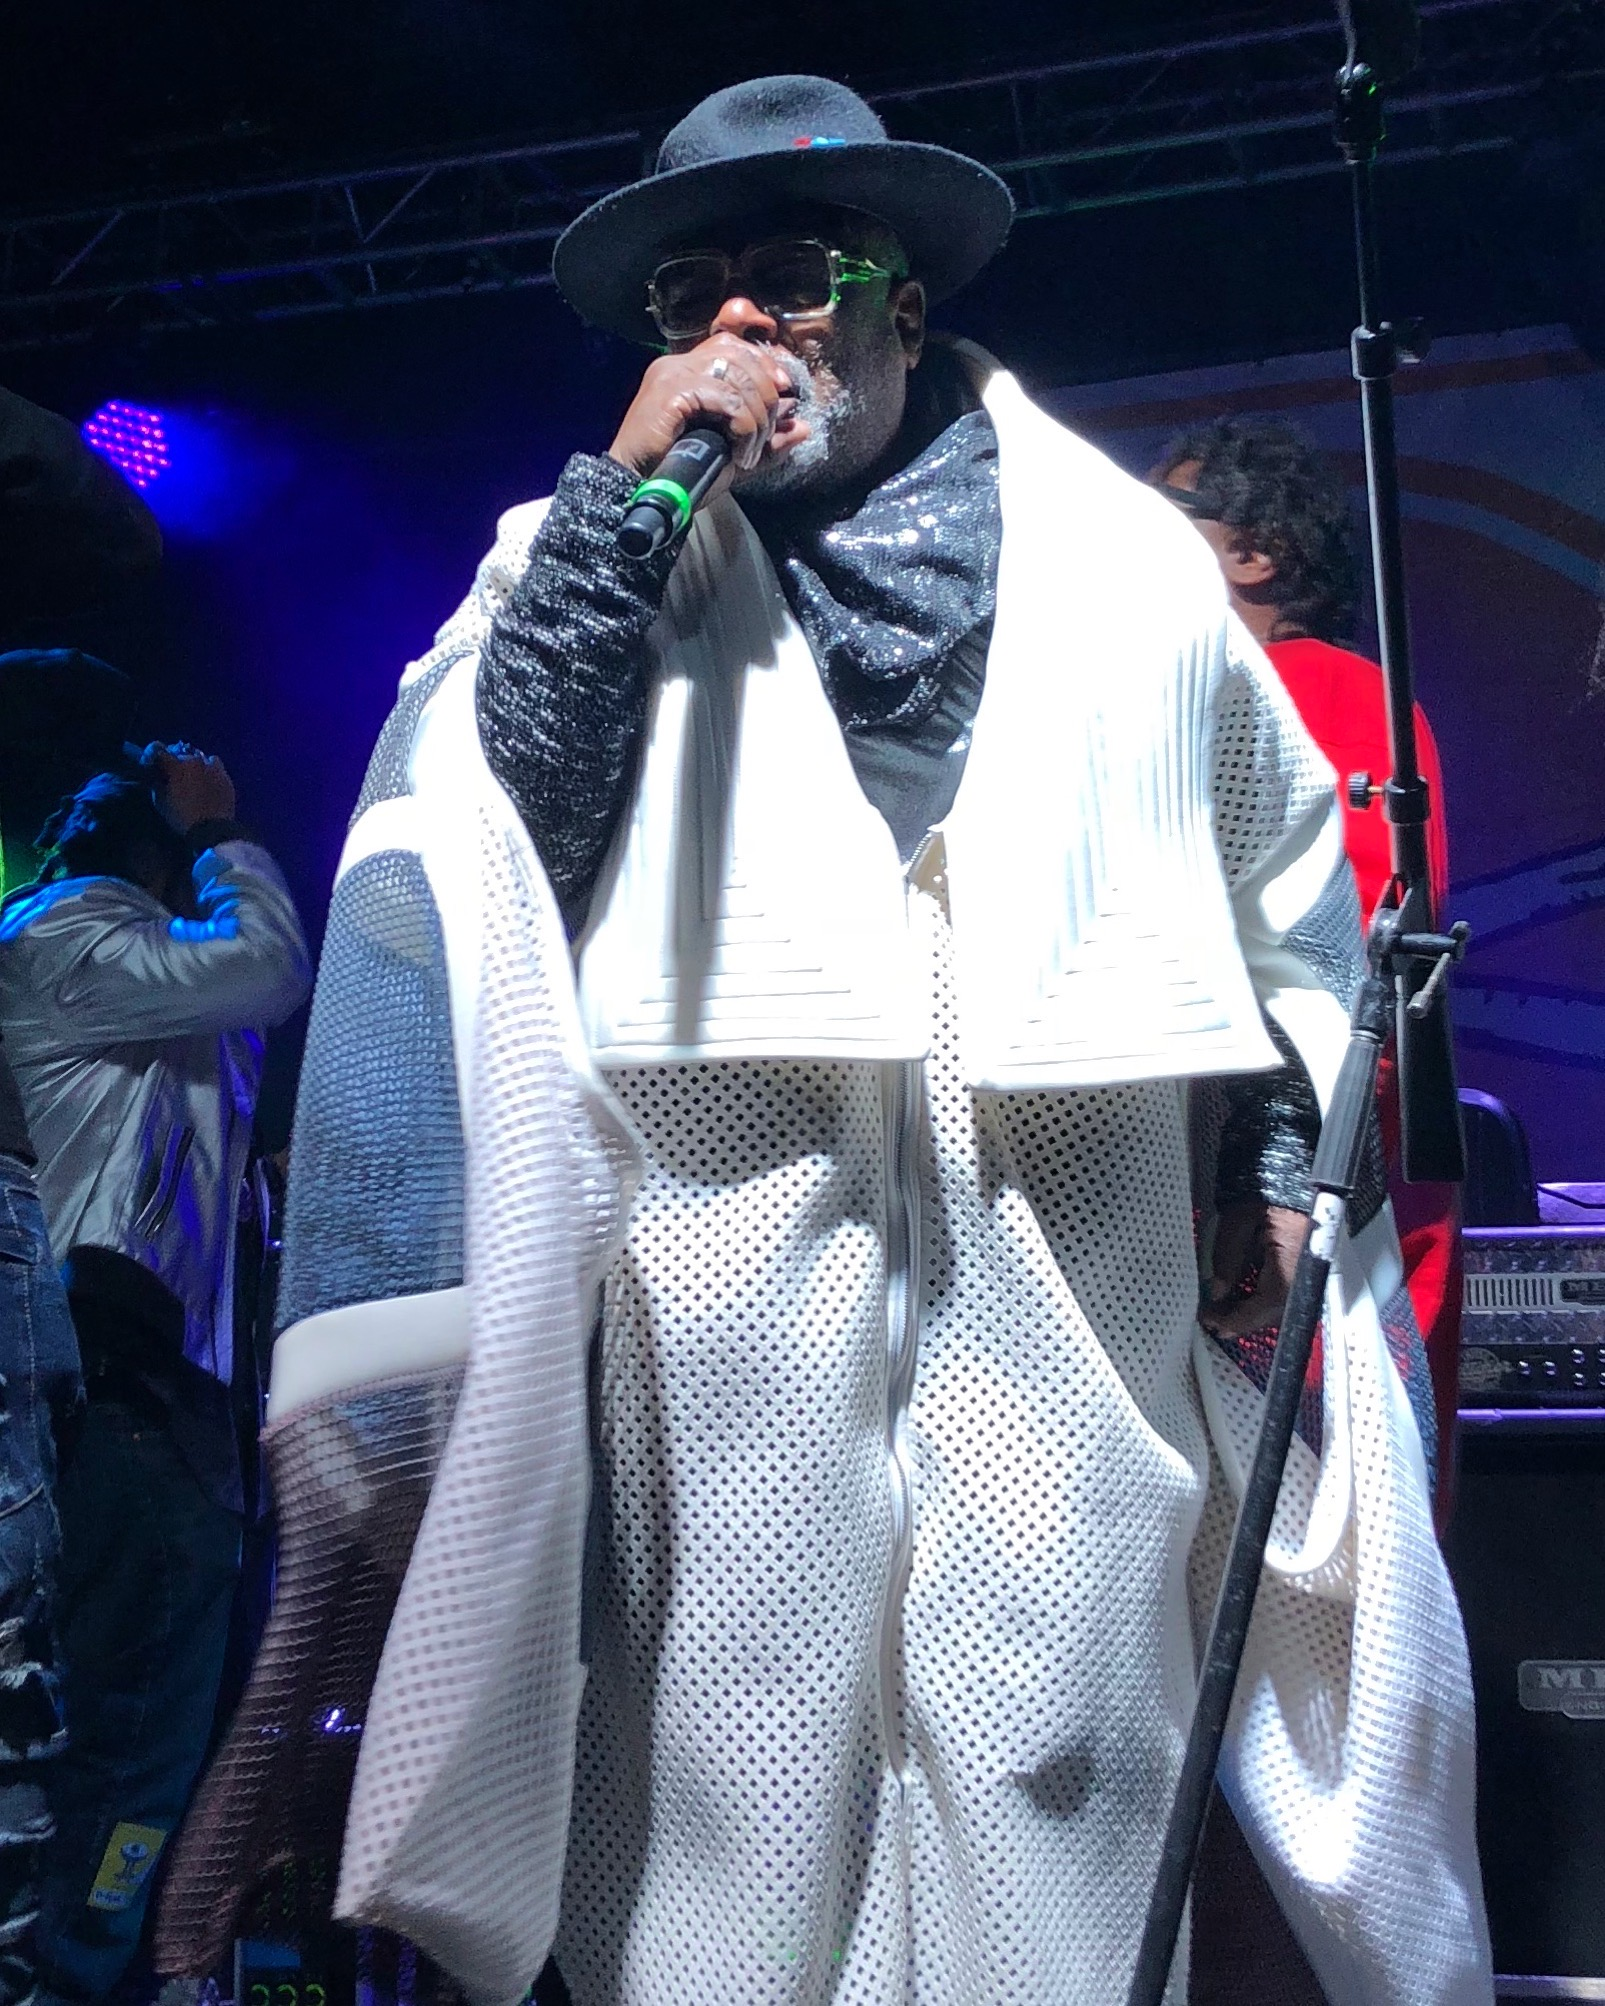 George Clinton took the stage at Treefort to an enthusiastic crowd.